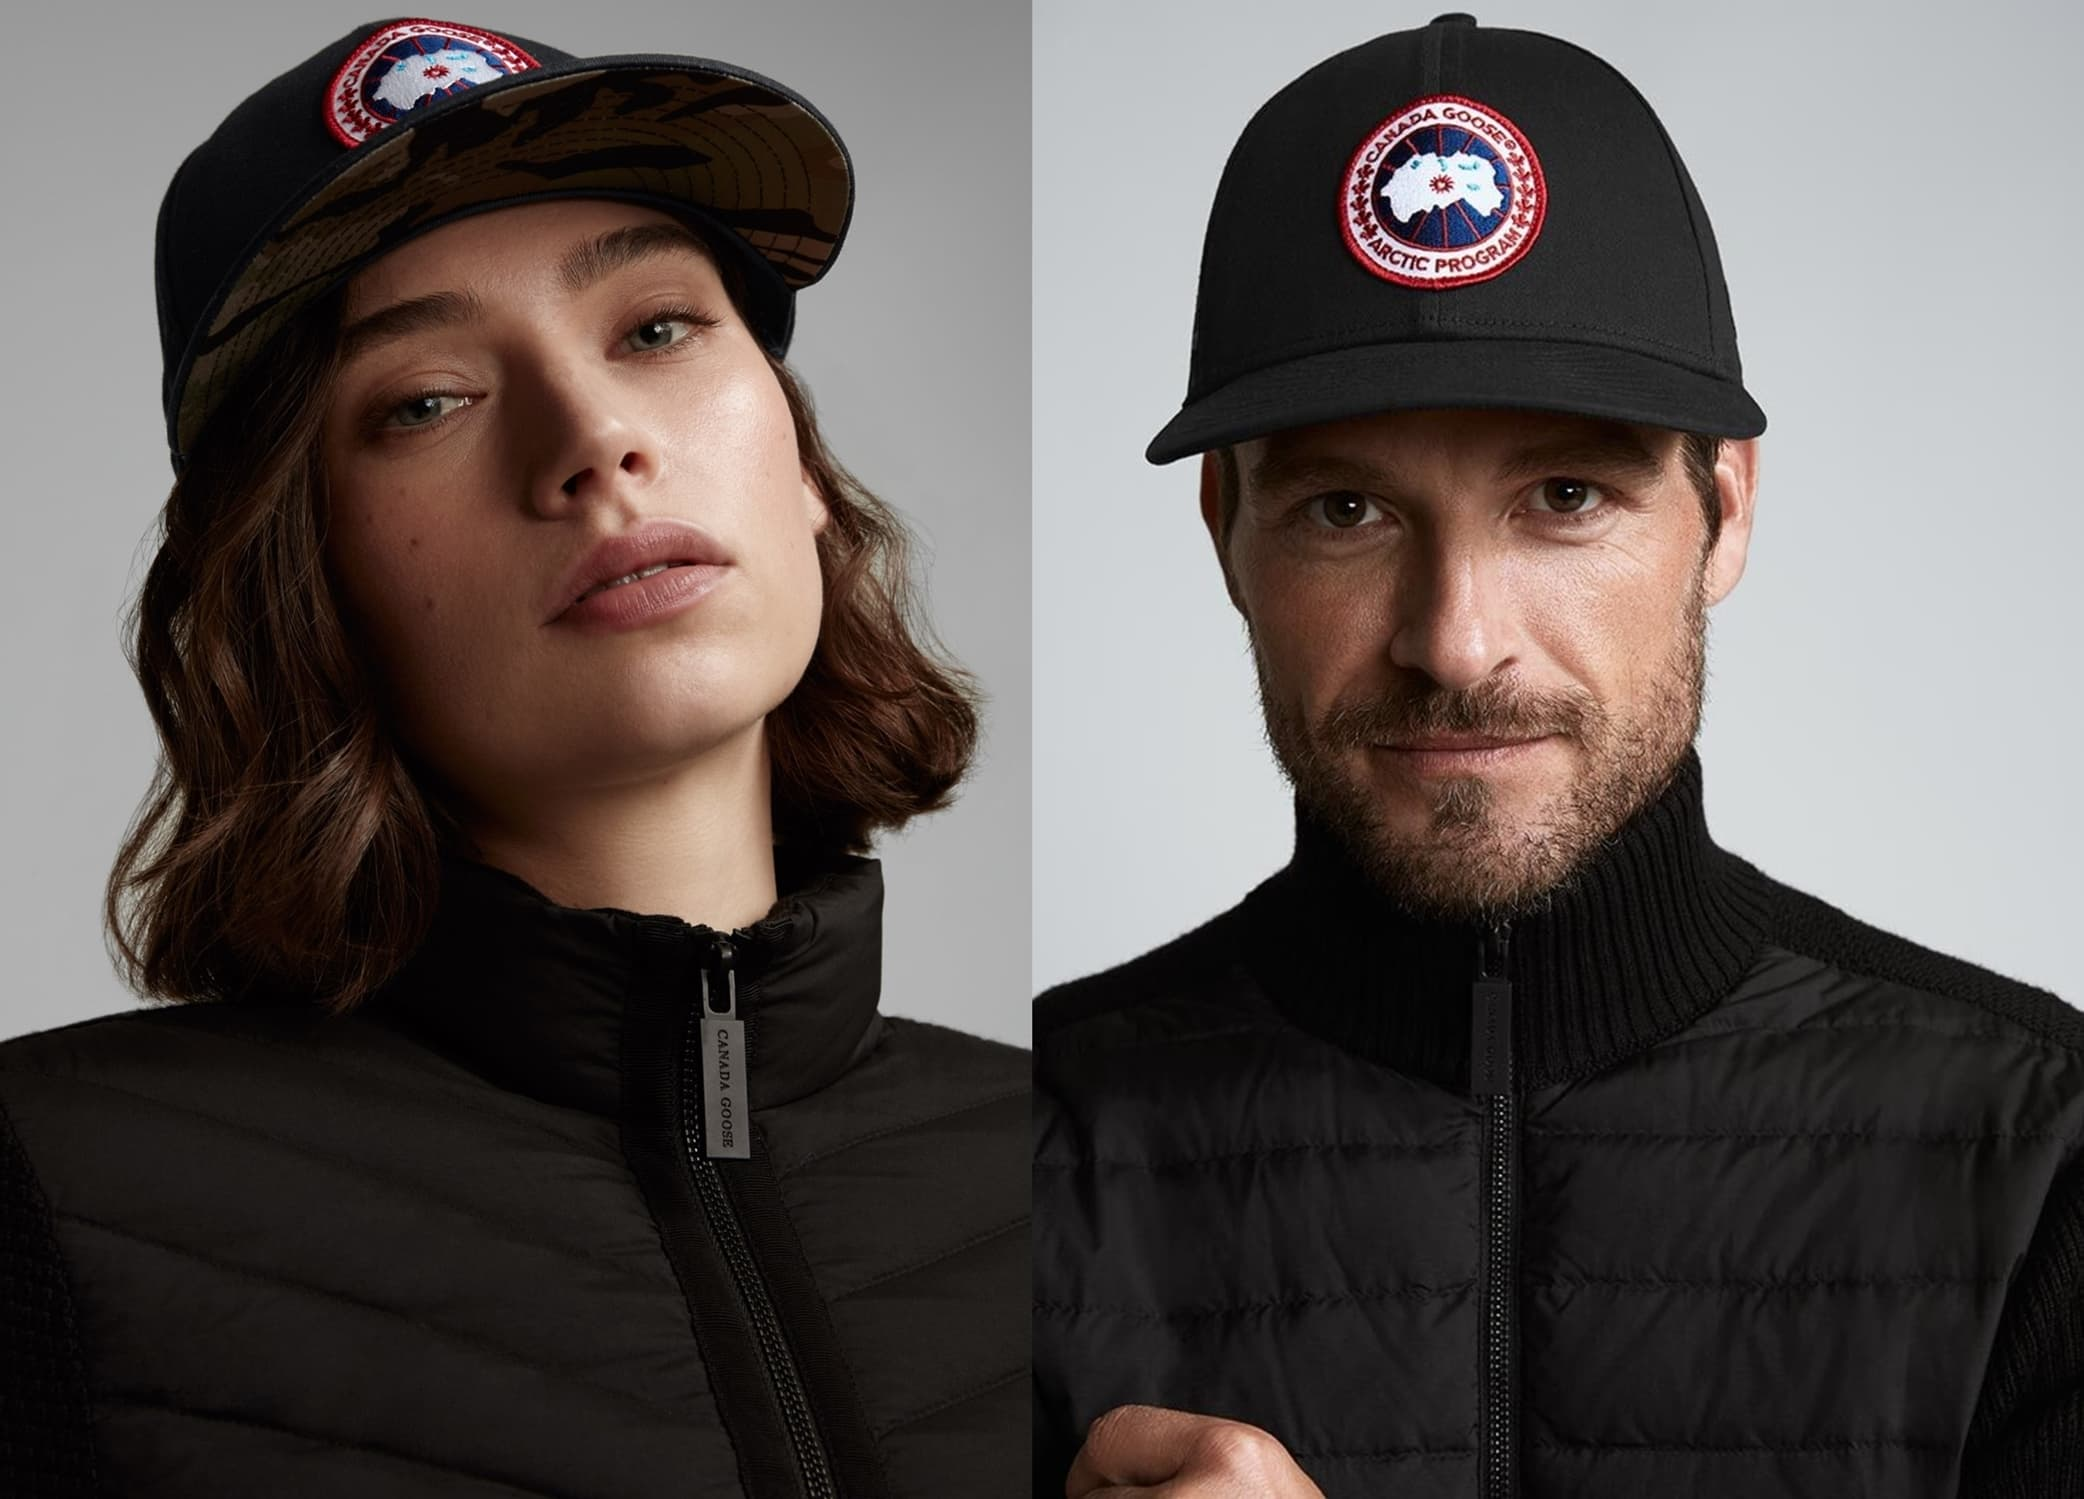 This classic cap has added functional details like reflectivity and an interior stash pocket to keep small essentials close